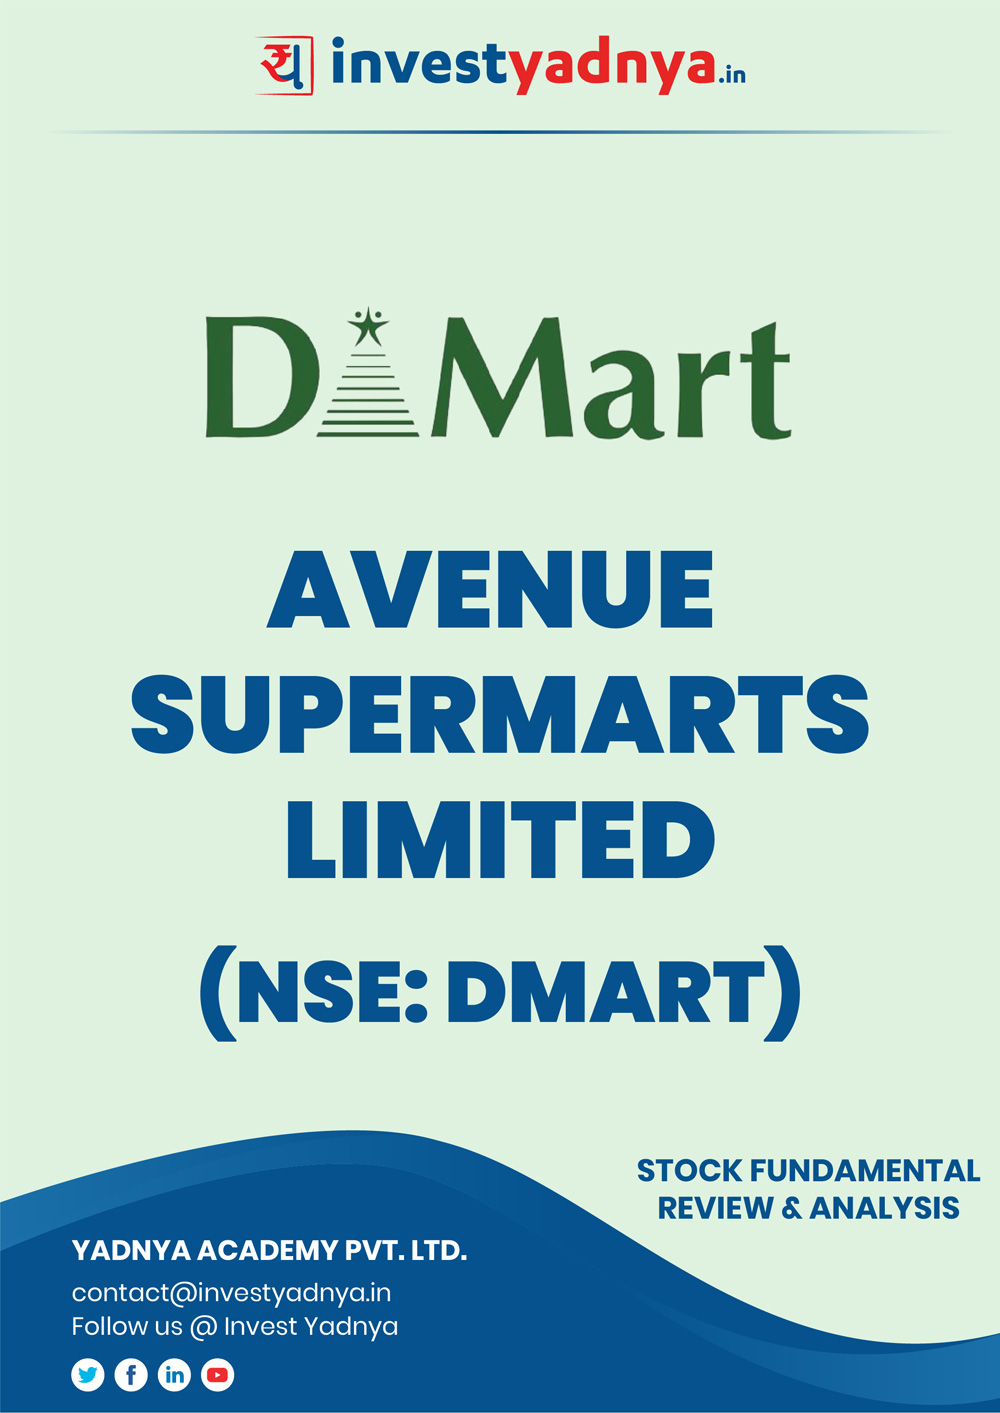 This e-book offers an in-depth Dmart stock analysis, considering both Financial and Equity Research Parameters. It reviews the company, industry, competitors, financials, etc. ✔ Detailed Stock Review ✔ Latest Research Reports